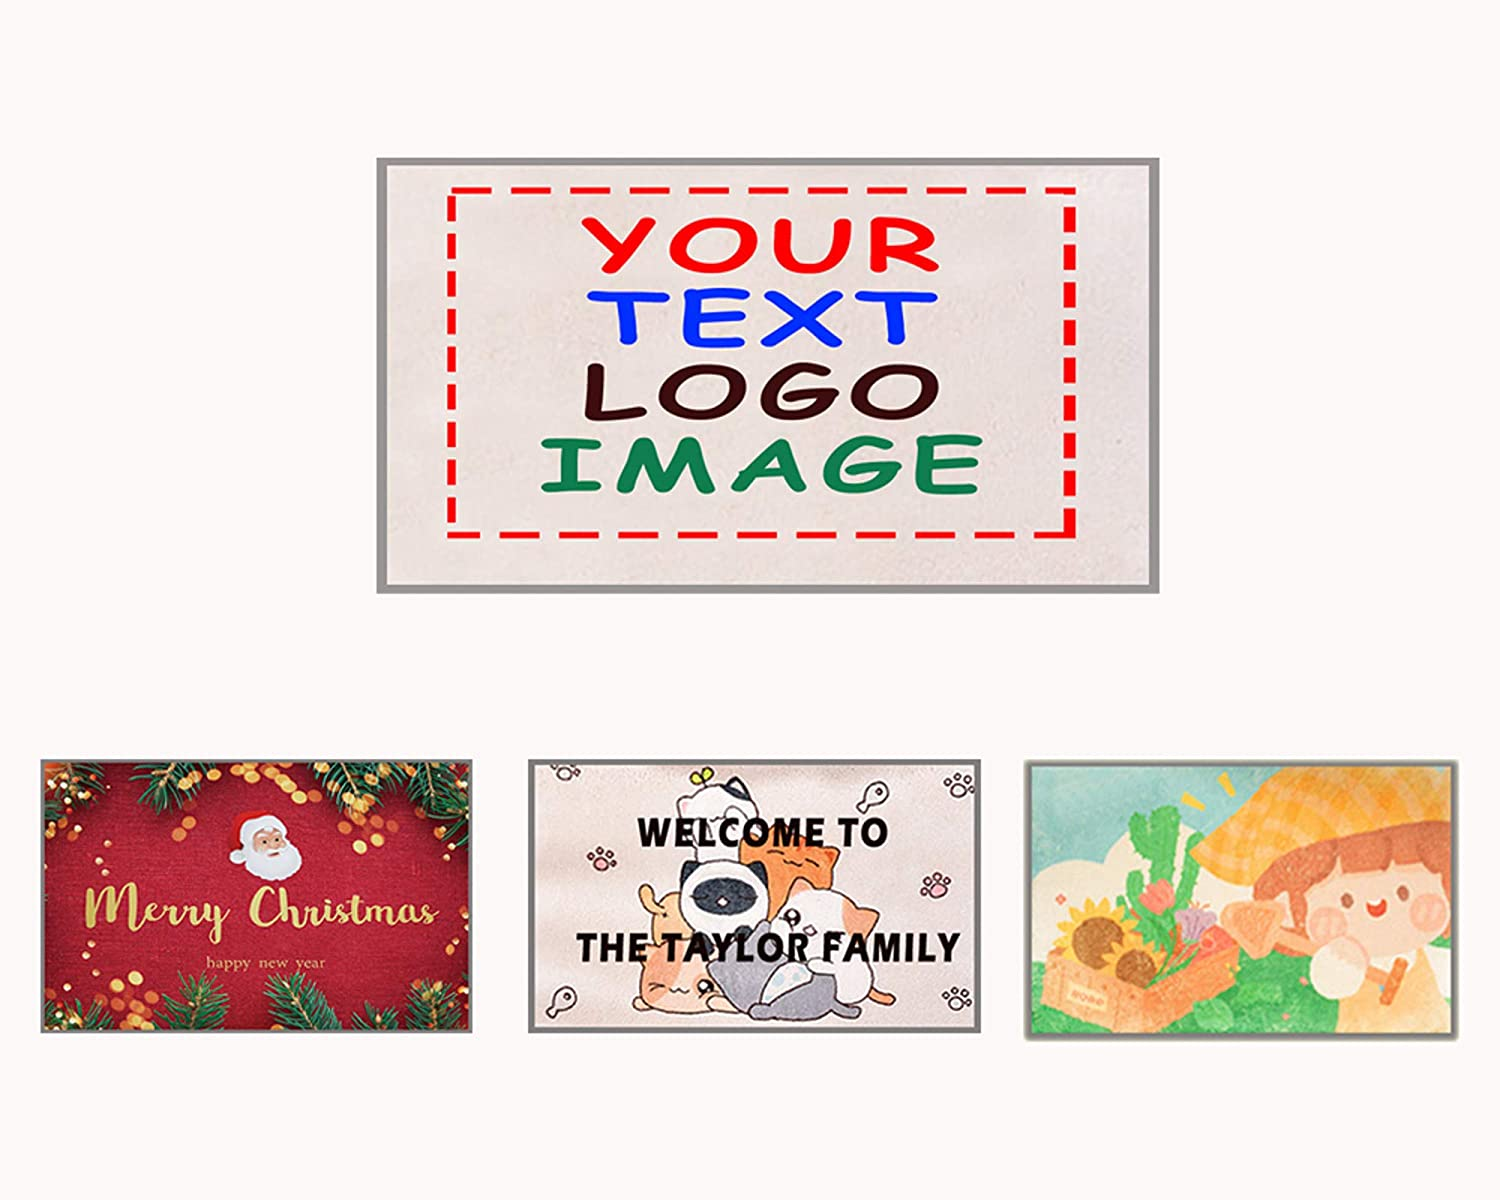 Custom Personalized Door discount Super-cheap Mat Customized Photo Text Non-Slip Was